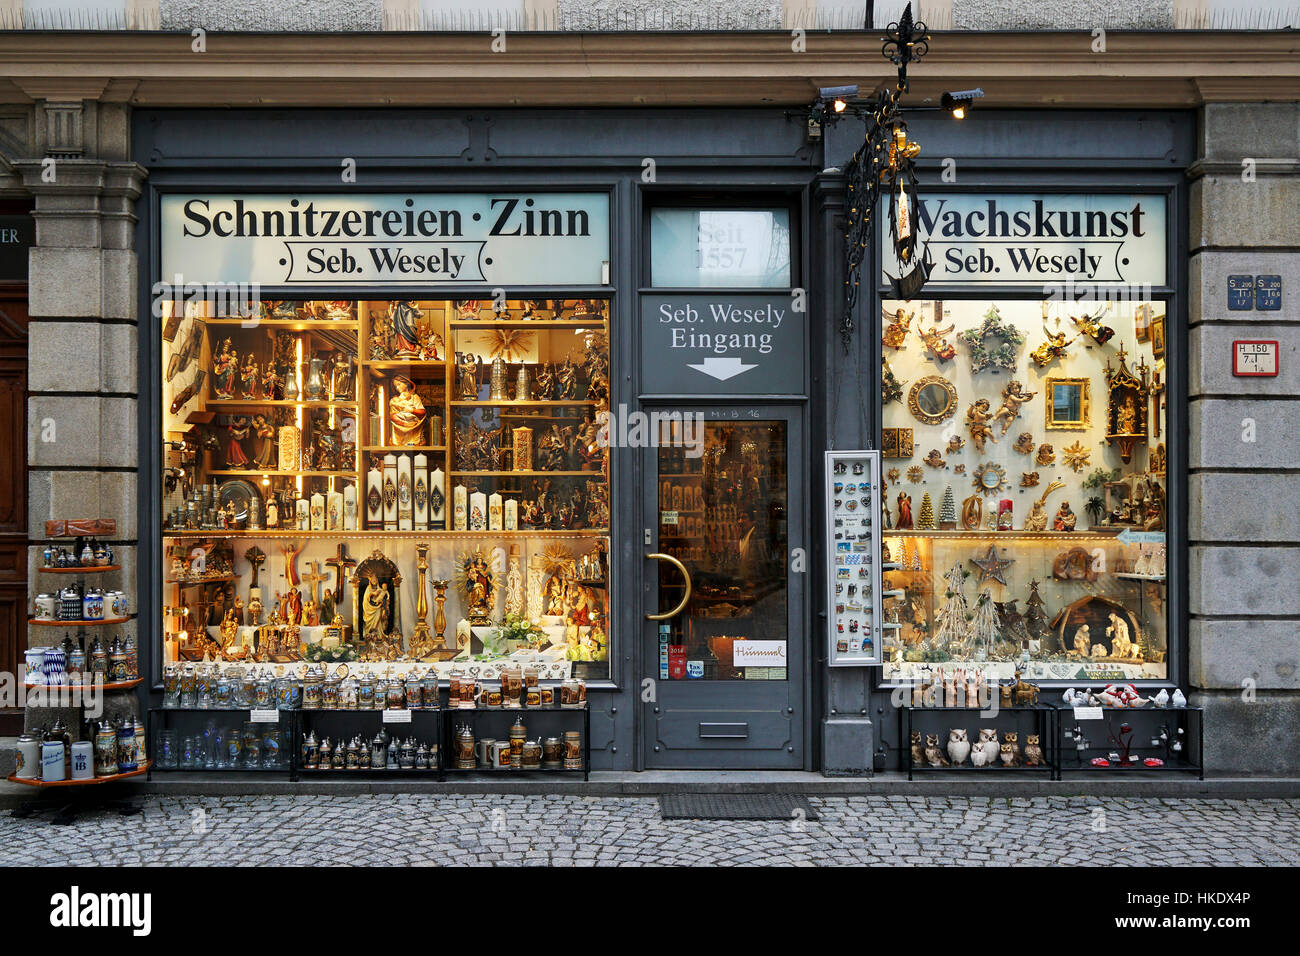 Shop with devotional objects and souvenirs, St. Peter's Square, Munich, Bavaria, Germany - Stock Image